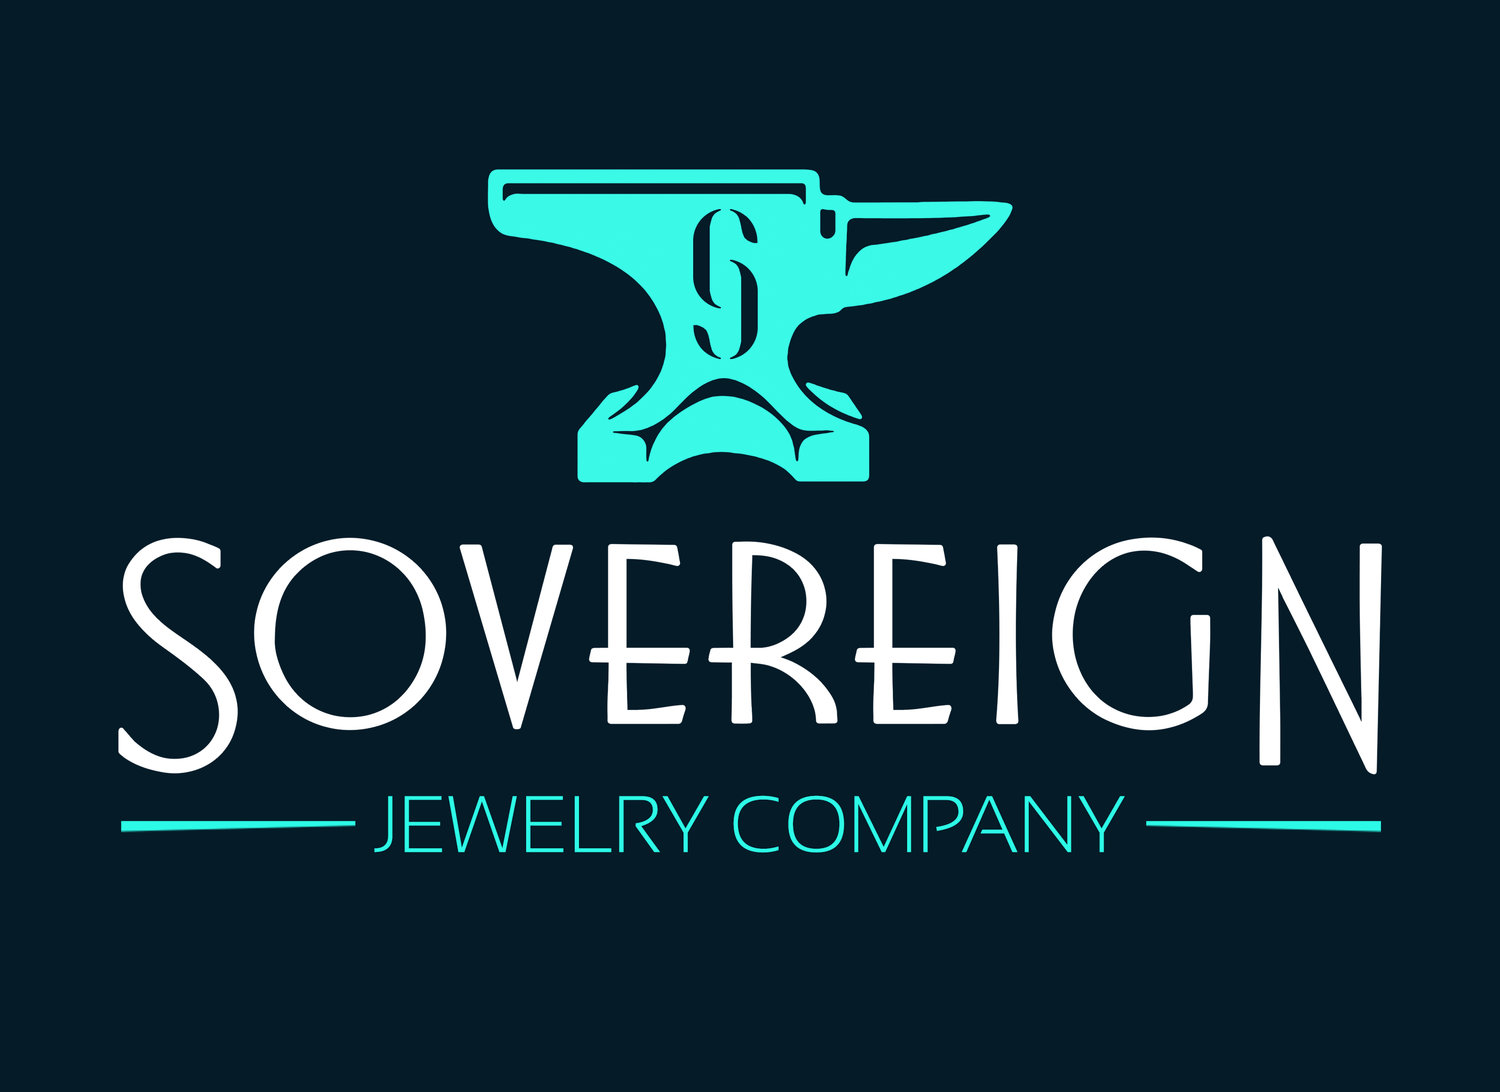 Sovereign Jewelry Company